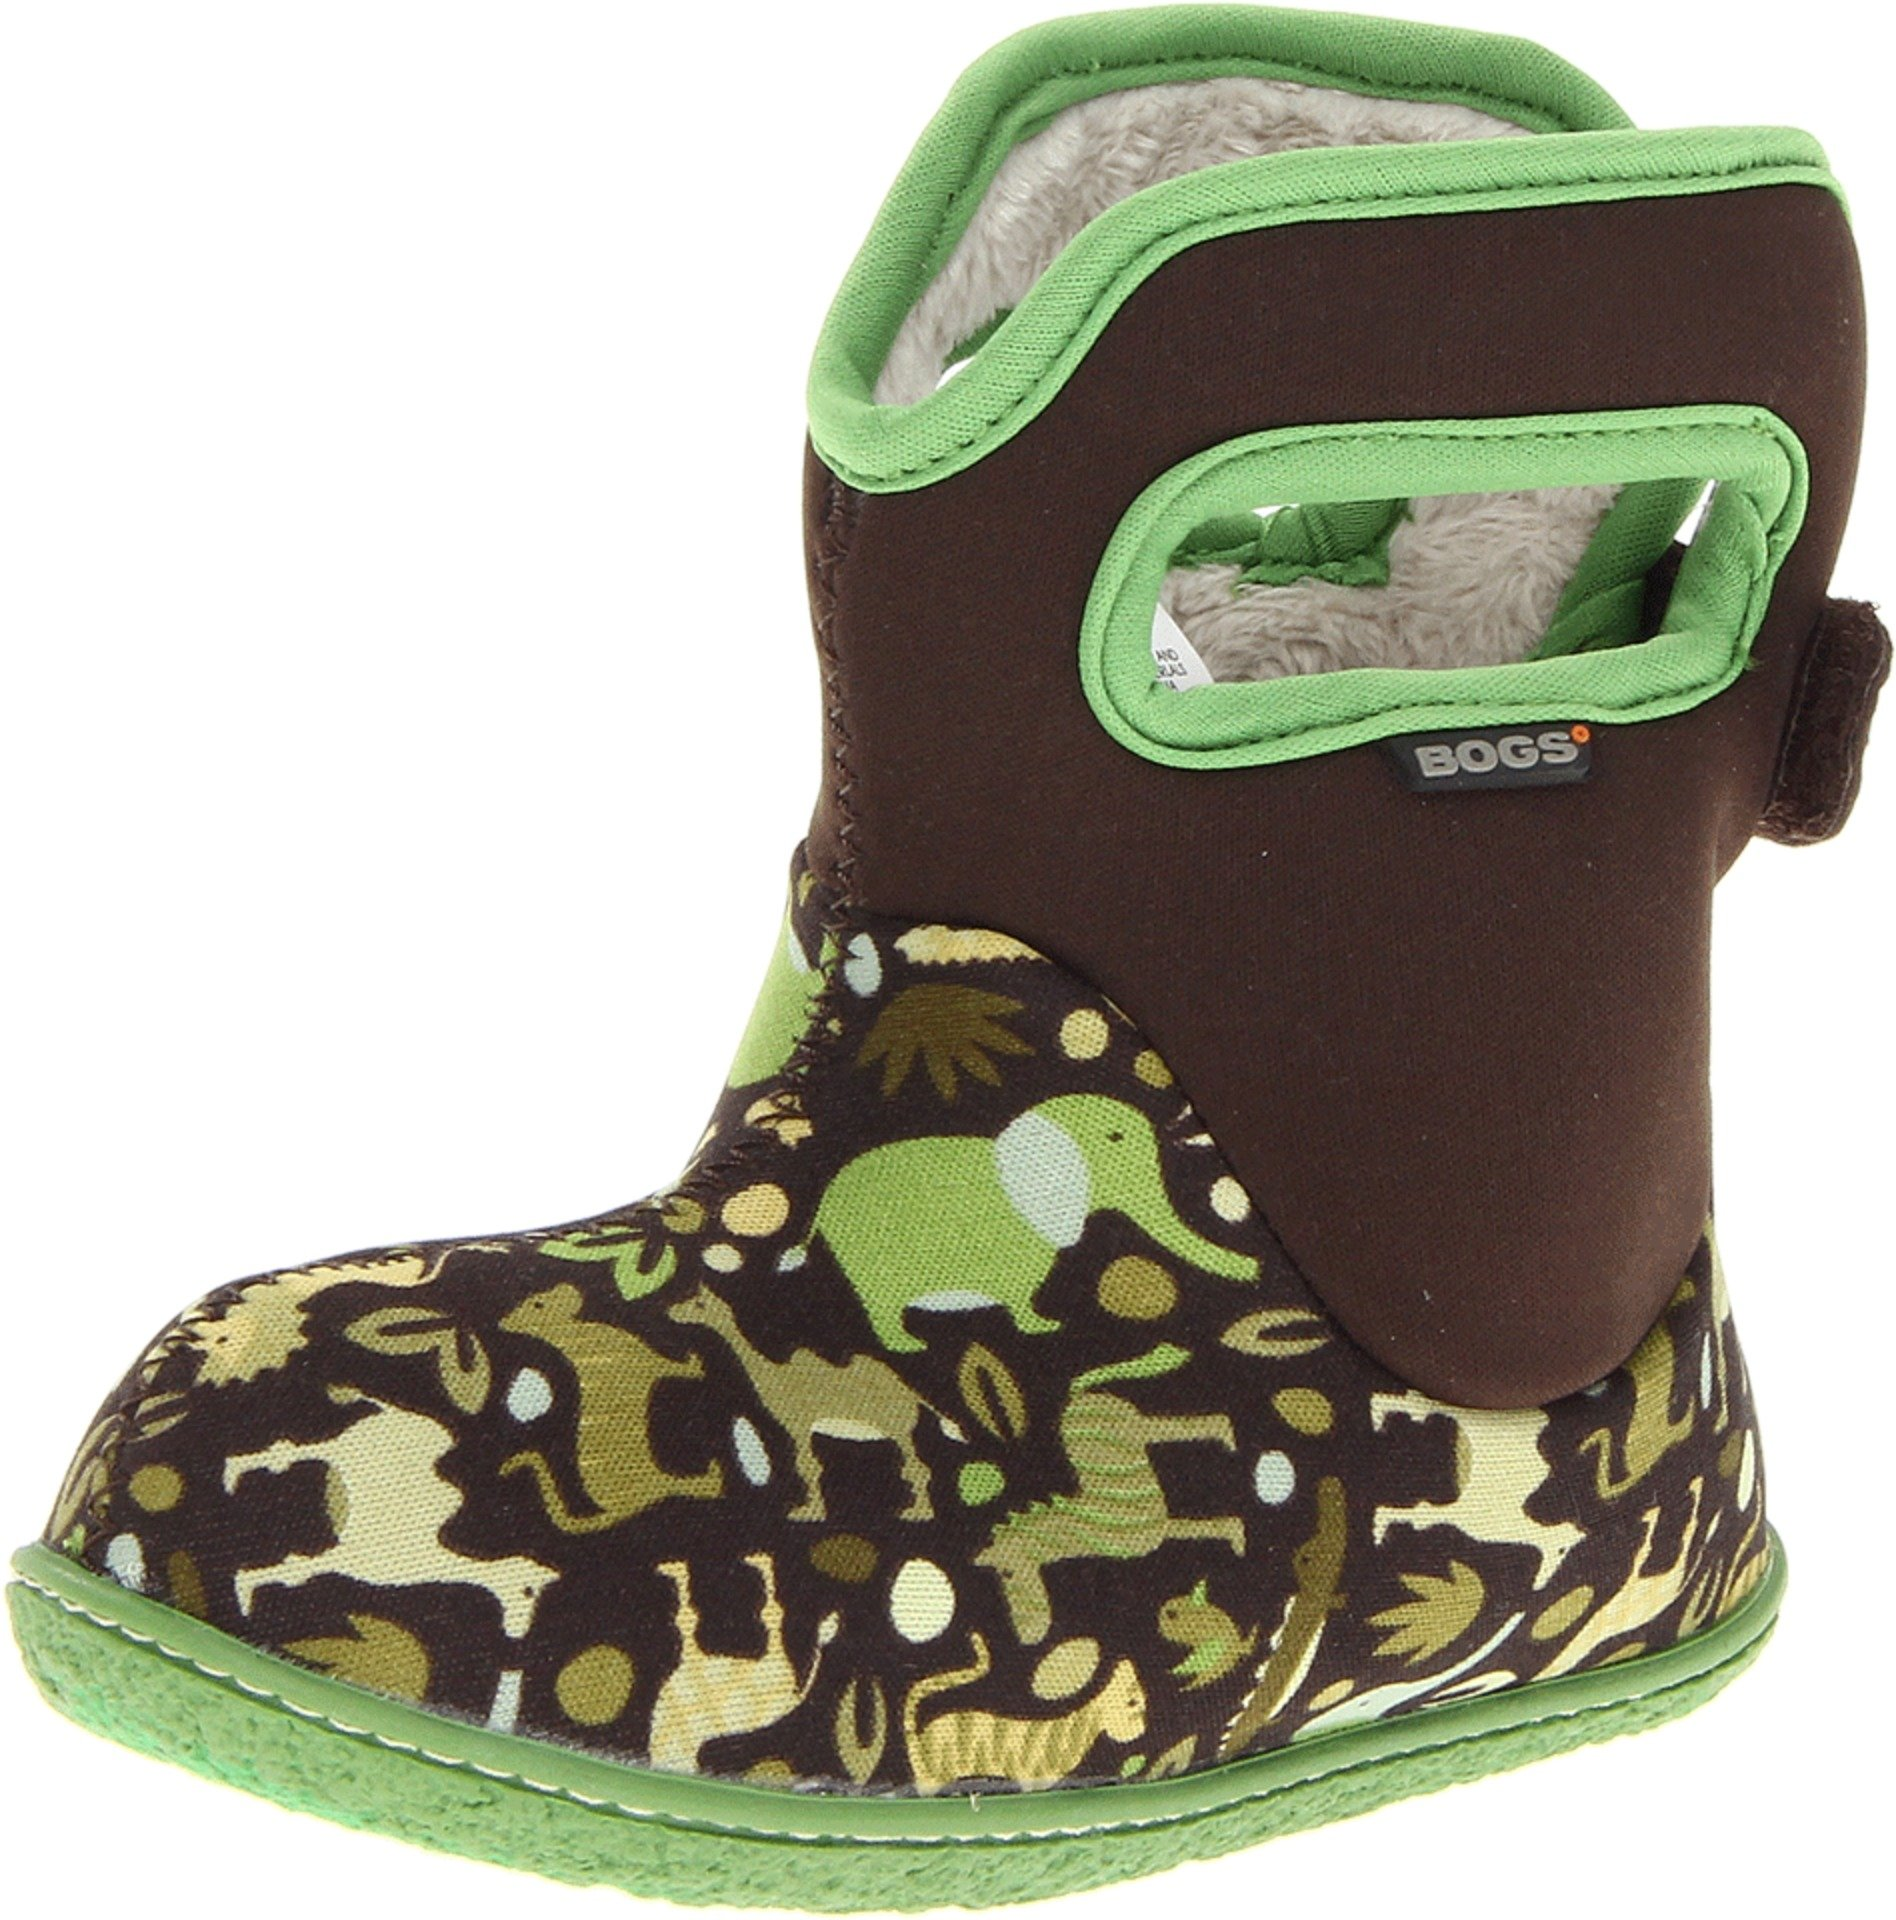 Bogs Baby Waterproof Insulated Toddler/Kids Rain Boots for Boys and Girls, Zoo Print/Green/Multi, 8 M US Toddler